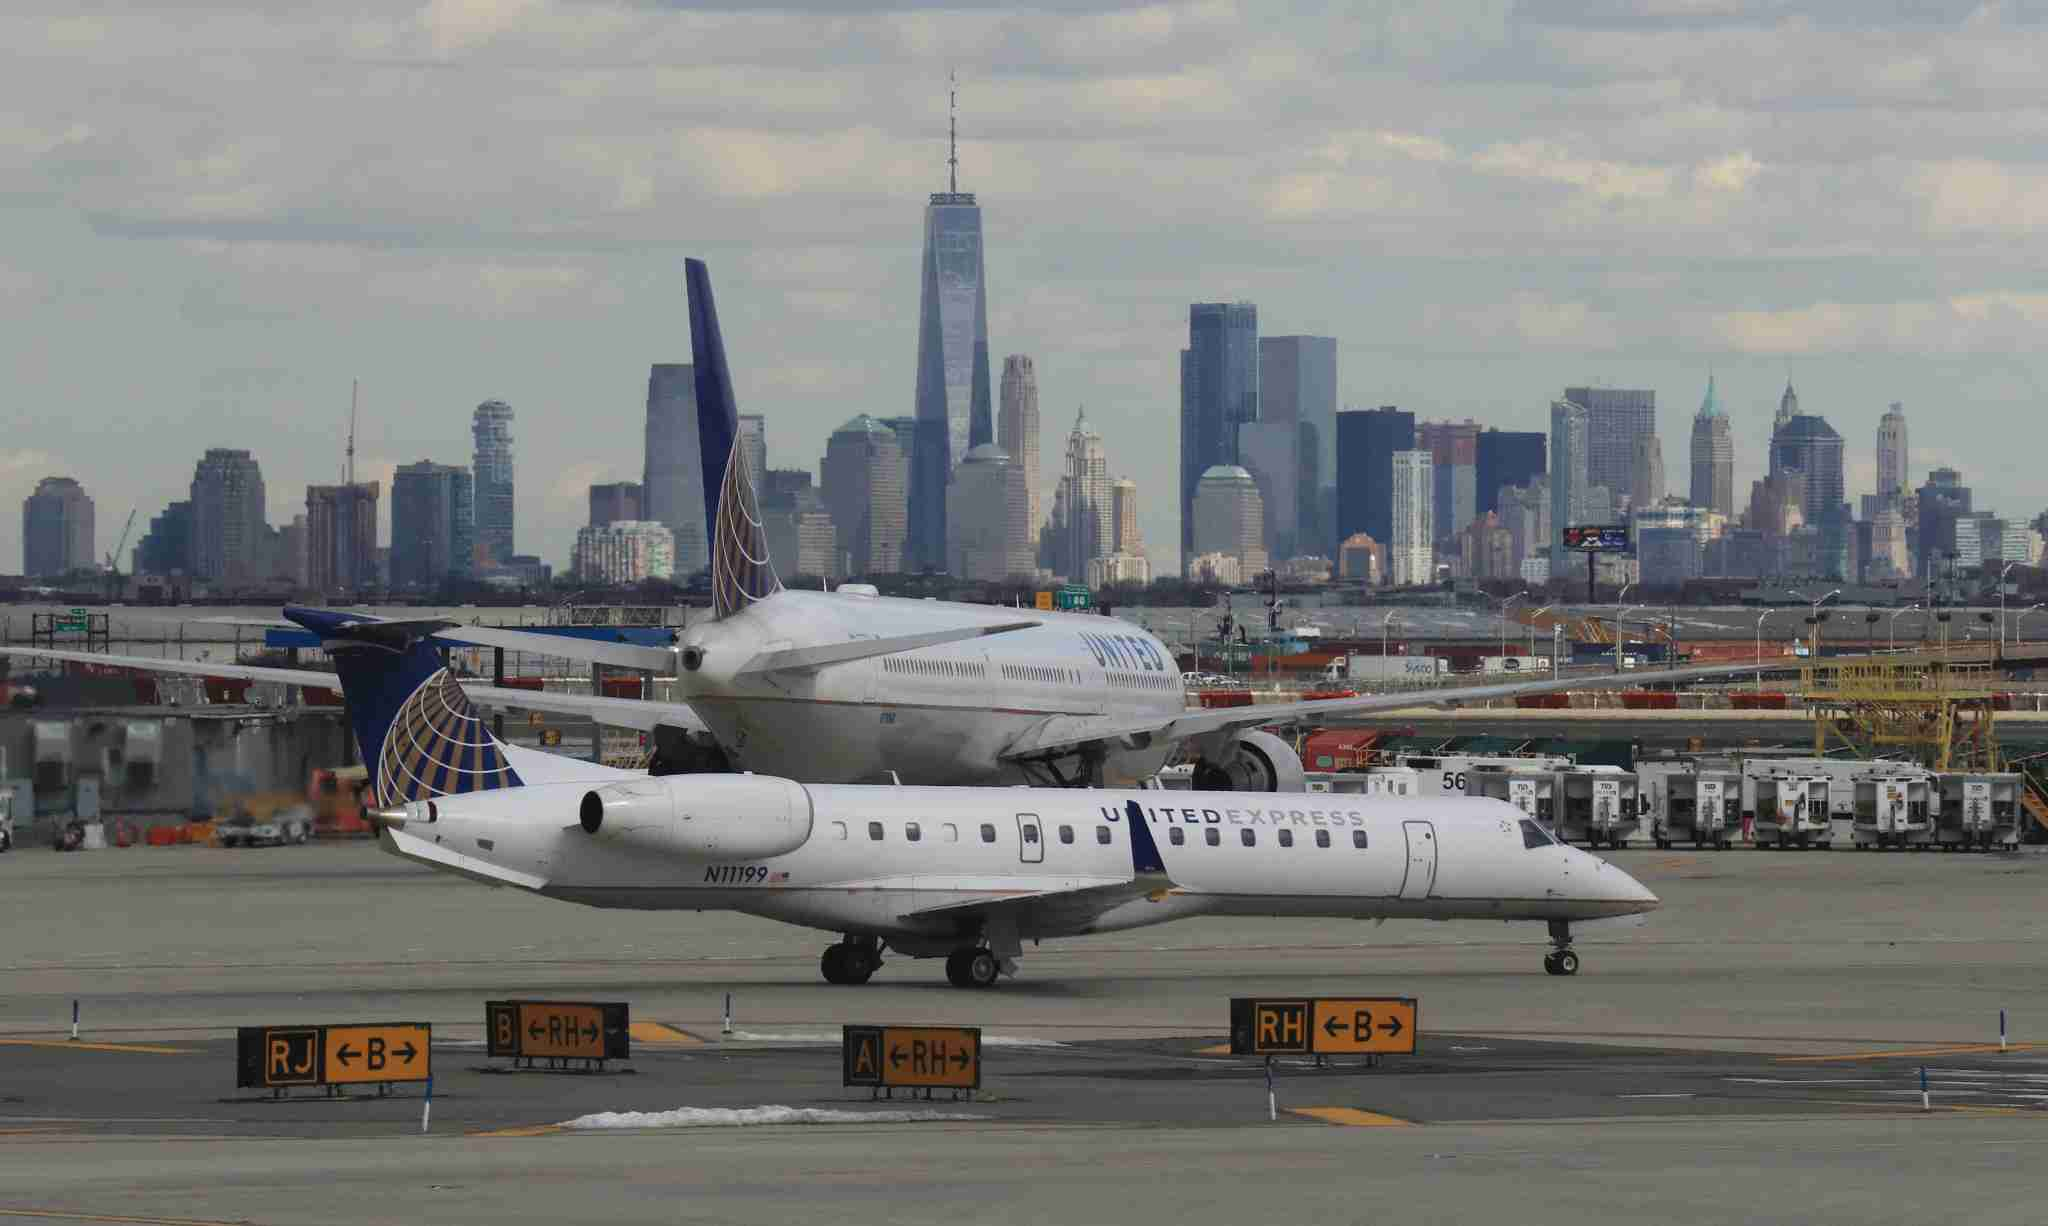 A United Express Airlines airplane heads to a runway at Newark Liberty Airport in front of the skyline of lower Manhattan on March 23, 2018 (Photo by Gary Hershorn/Getty Images)